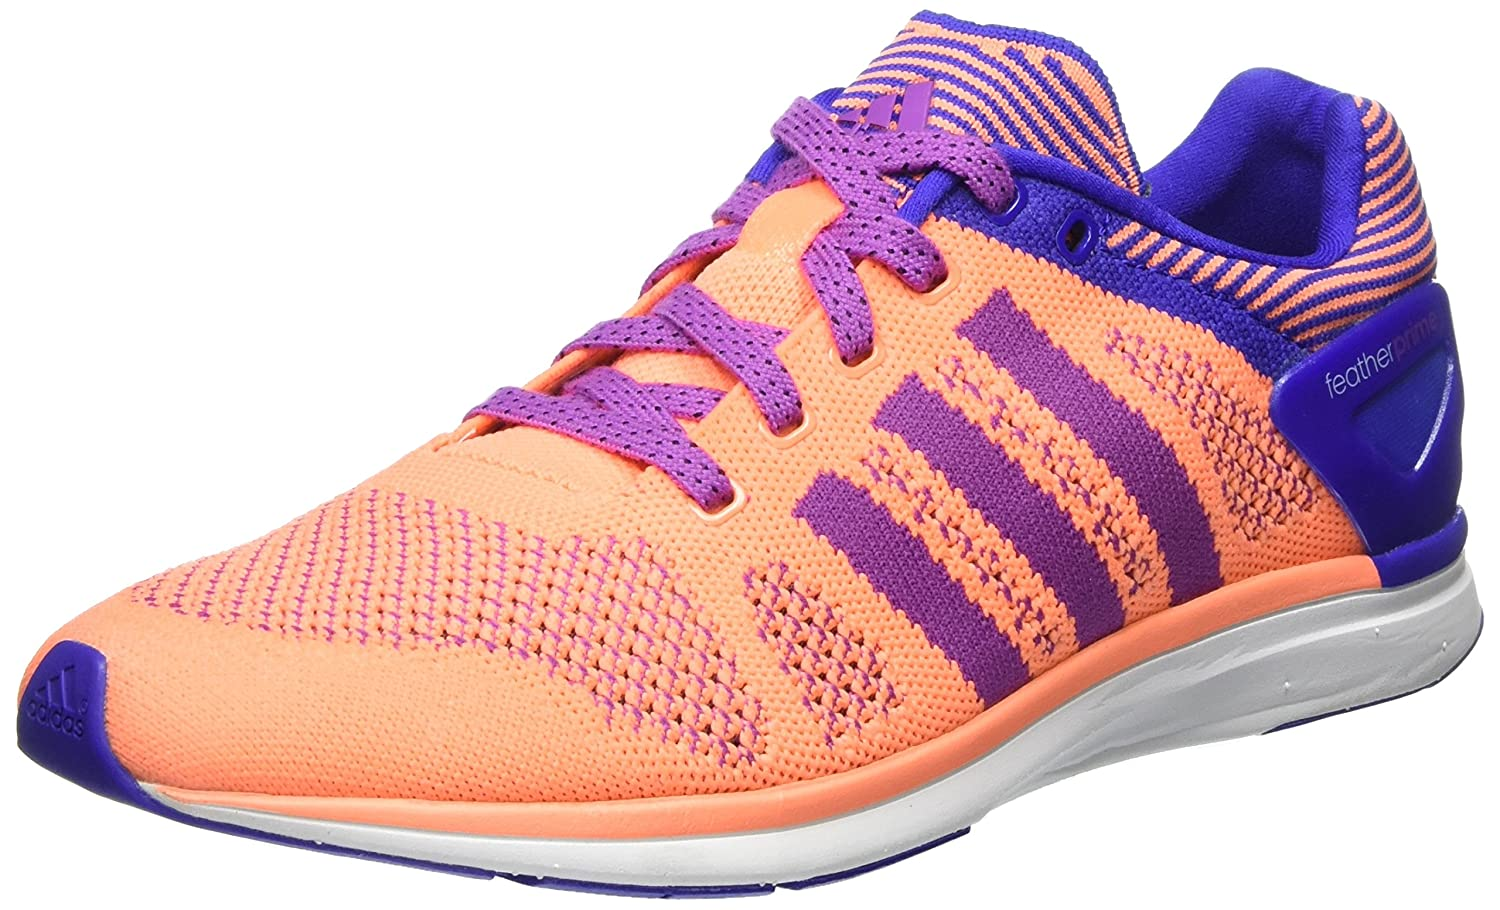 newest collection 32f3c 733ff adidas Adizero Feather Prime Woman - Zapatillas de Running Mujer  Amazon.es Zapatos y complementos